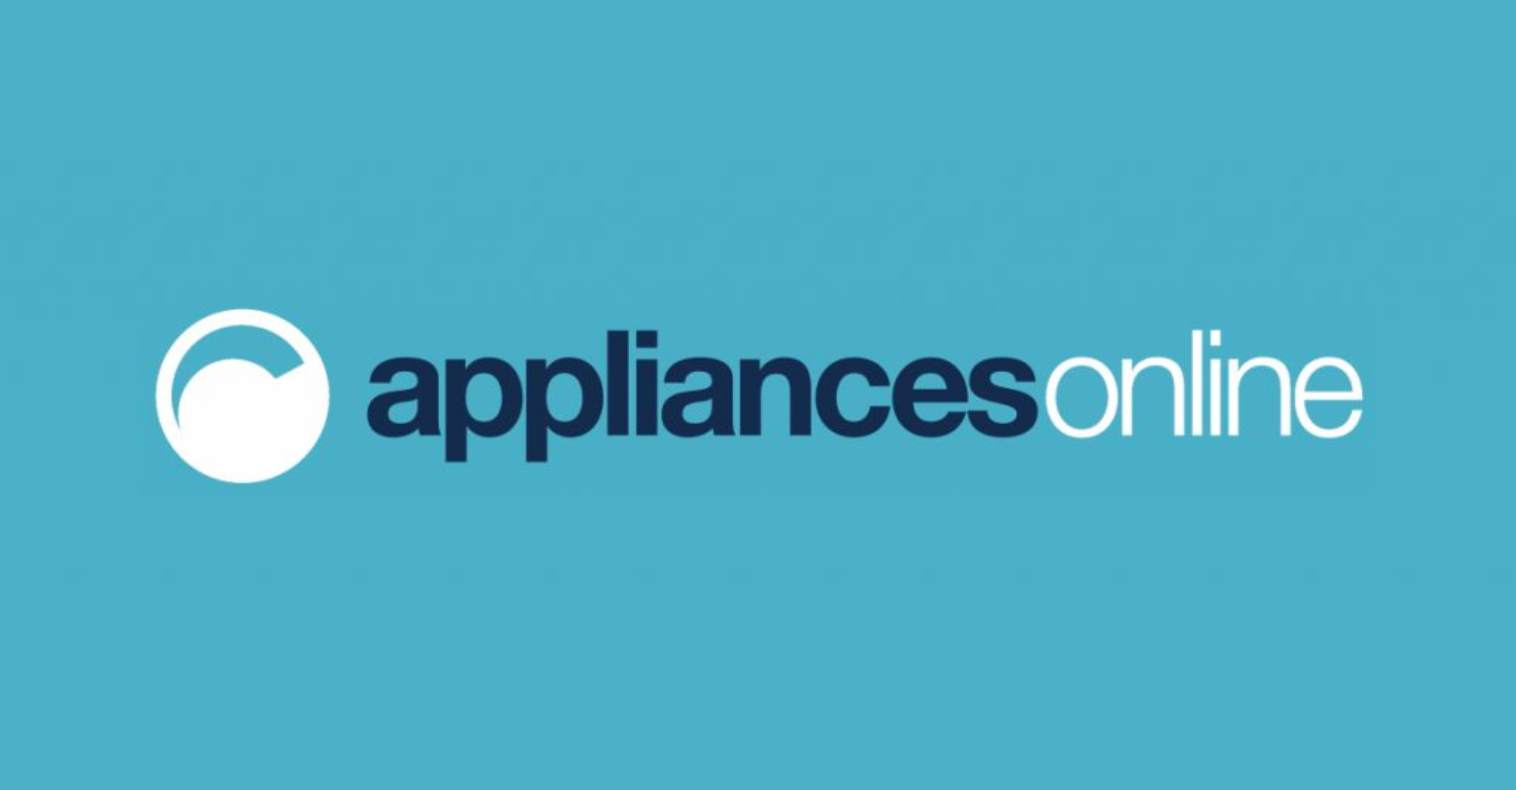 Screen Shot 2020 02 11 at 3.49.12 pm Appliances Online Partners With Klarna For 'Flexible Shopping